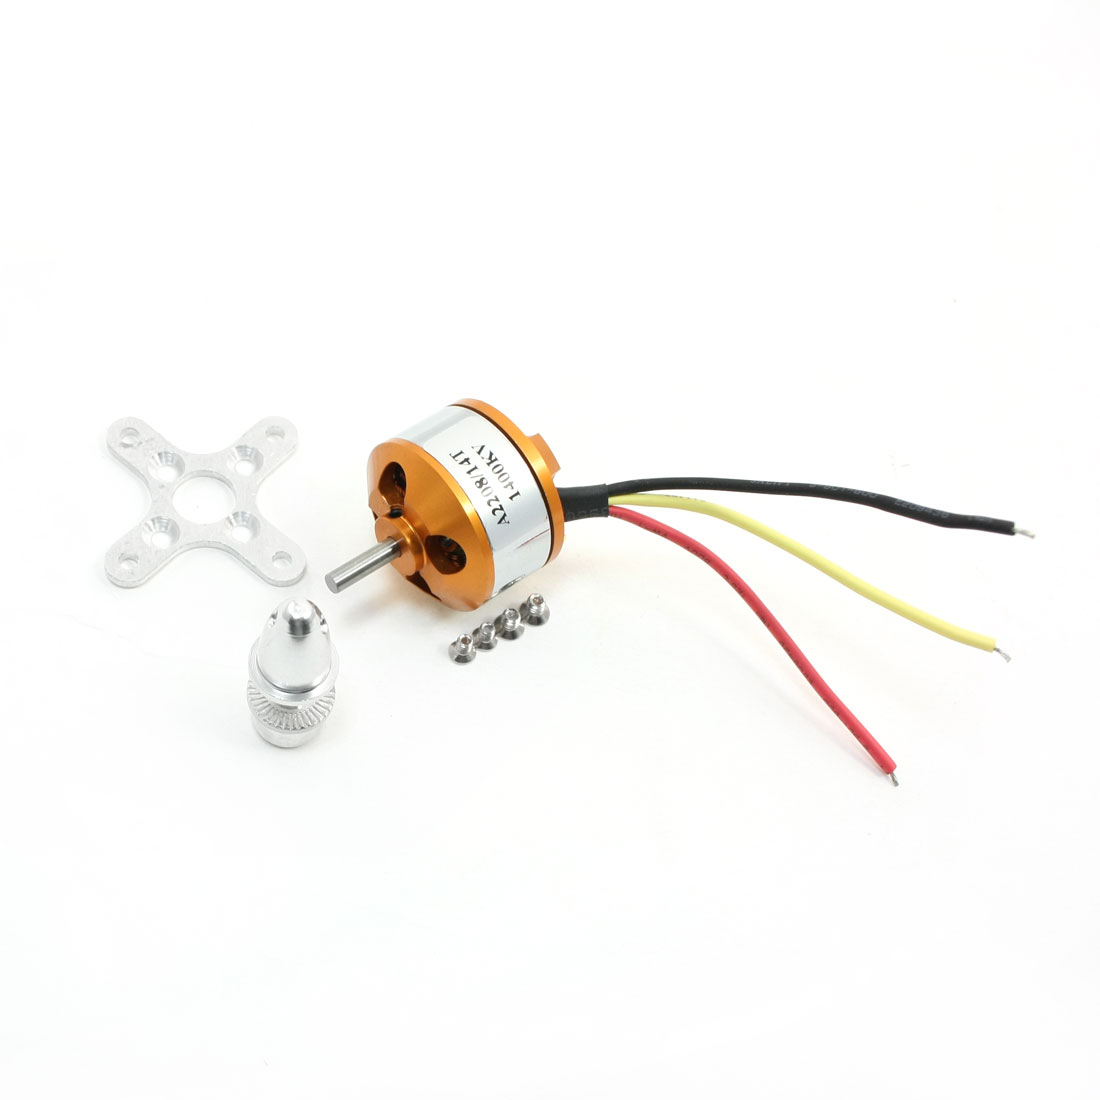 3mm Dia Drive Shaft A2208/14T 1400RPM/V Brushless Motor for RC Helicopter